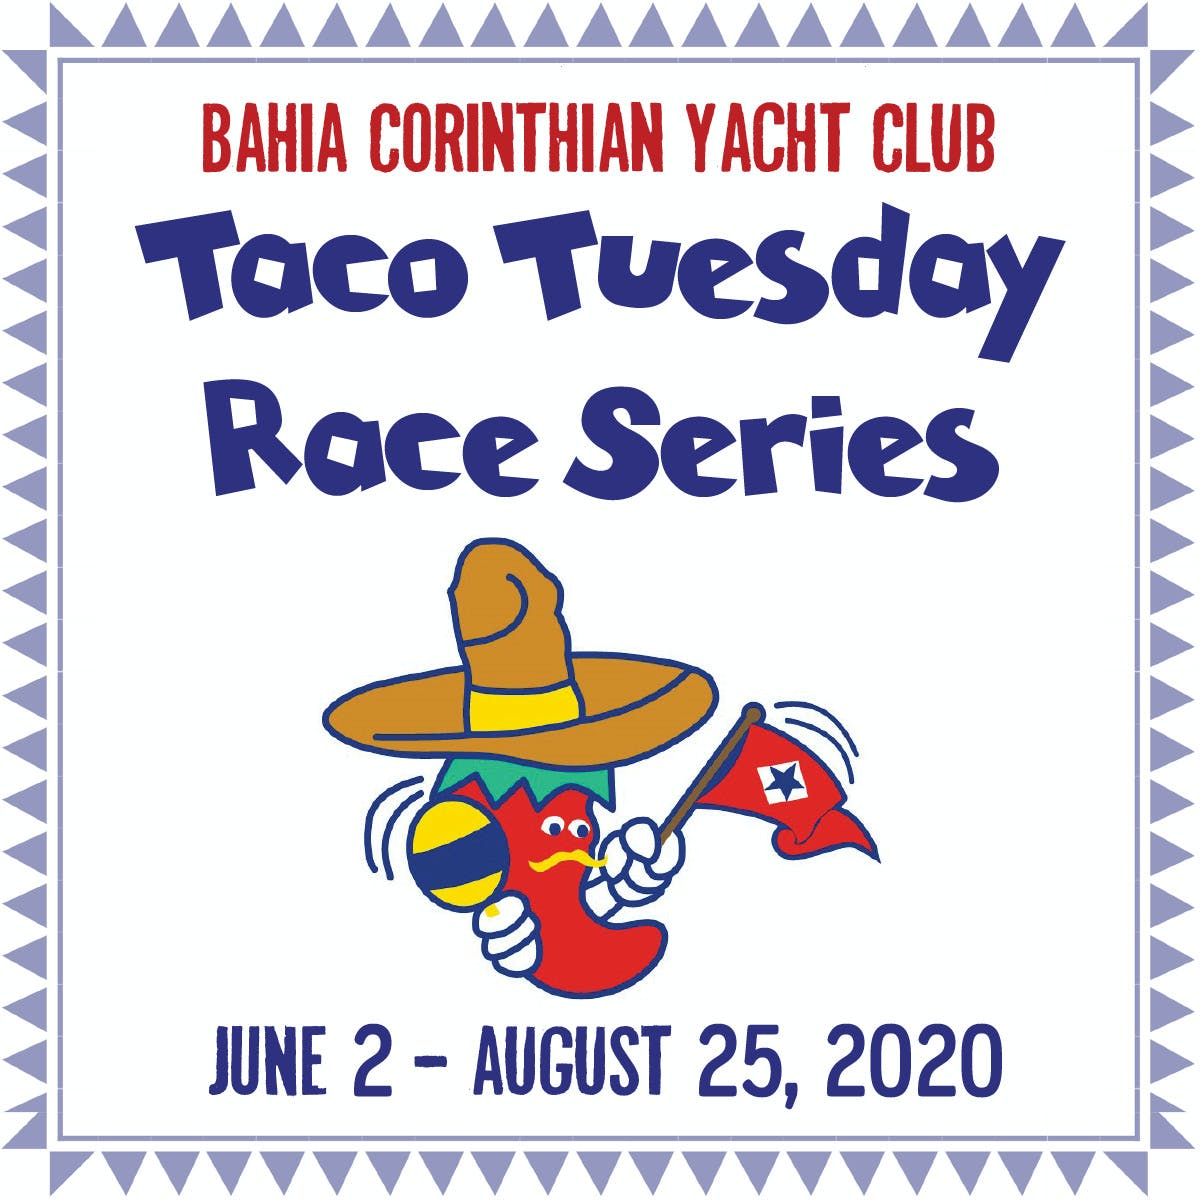 Taco Tuesday Race Series